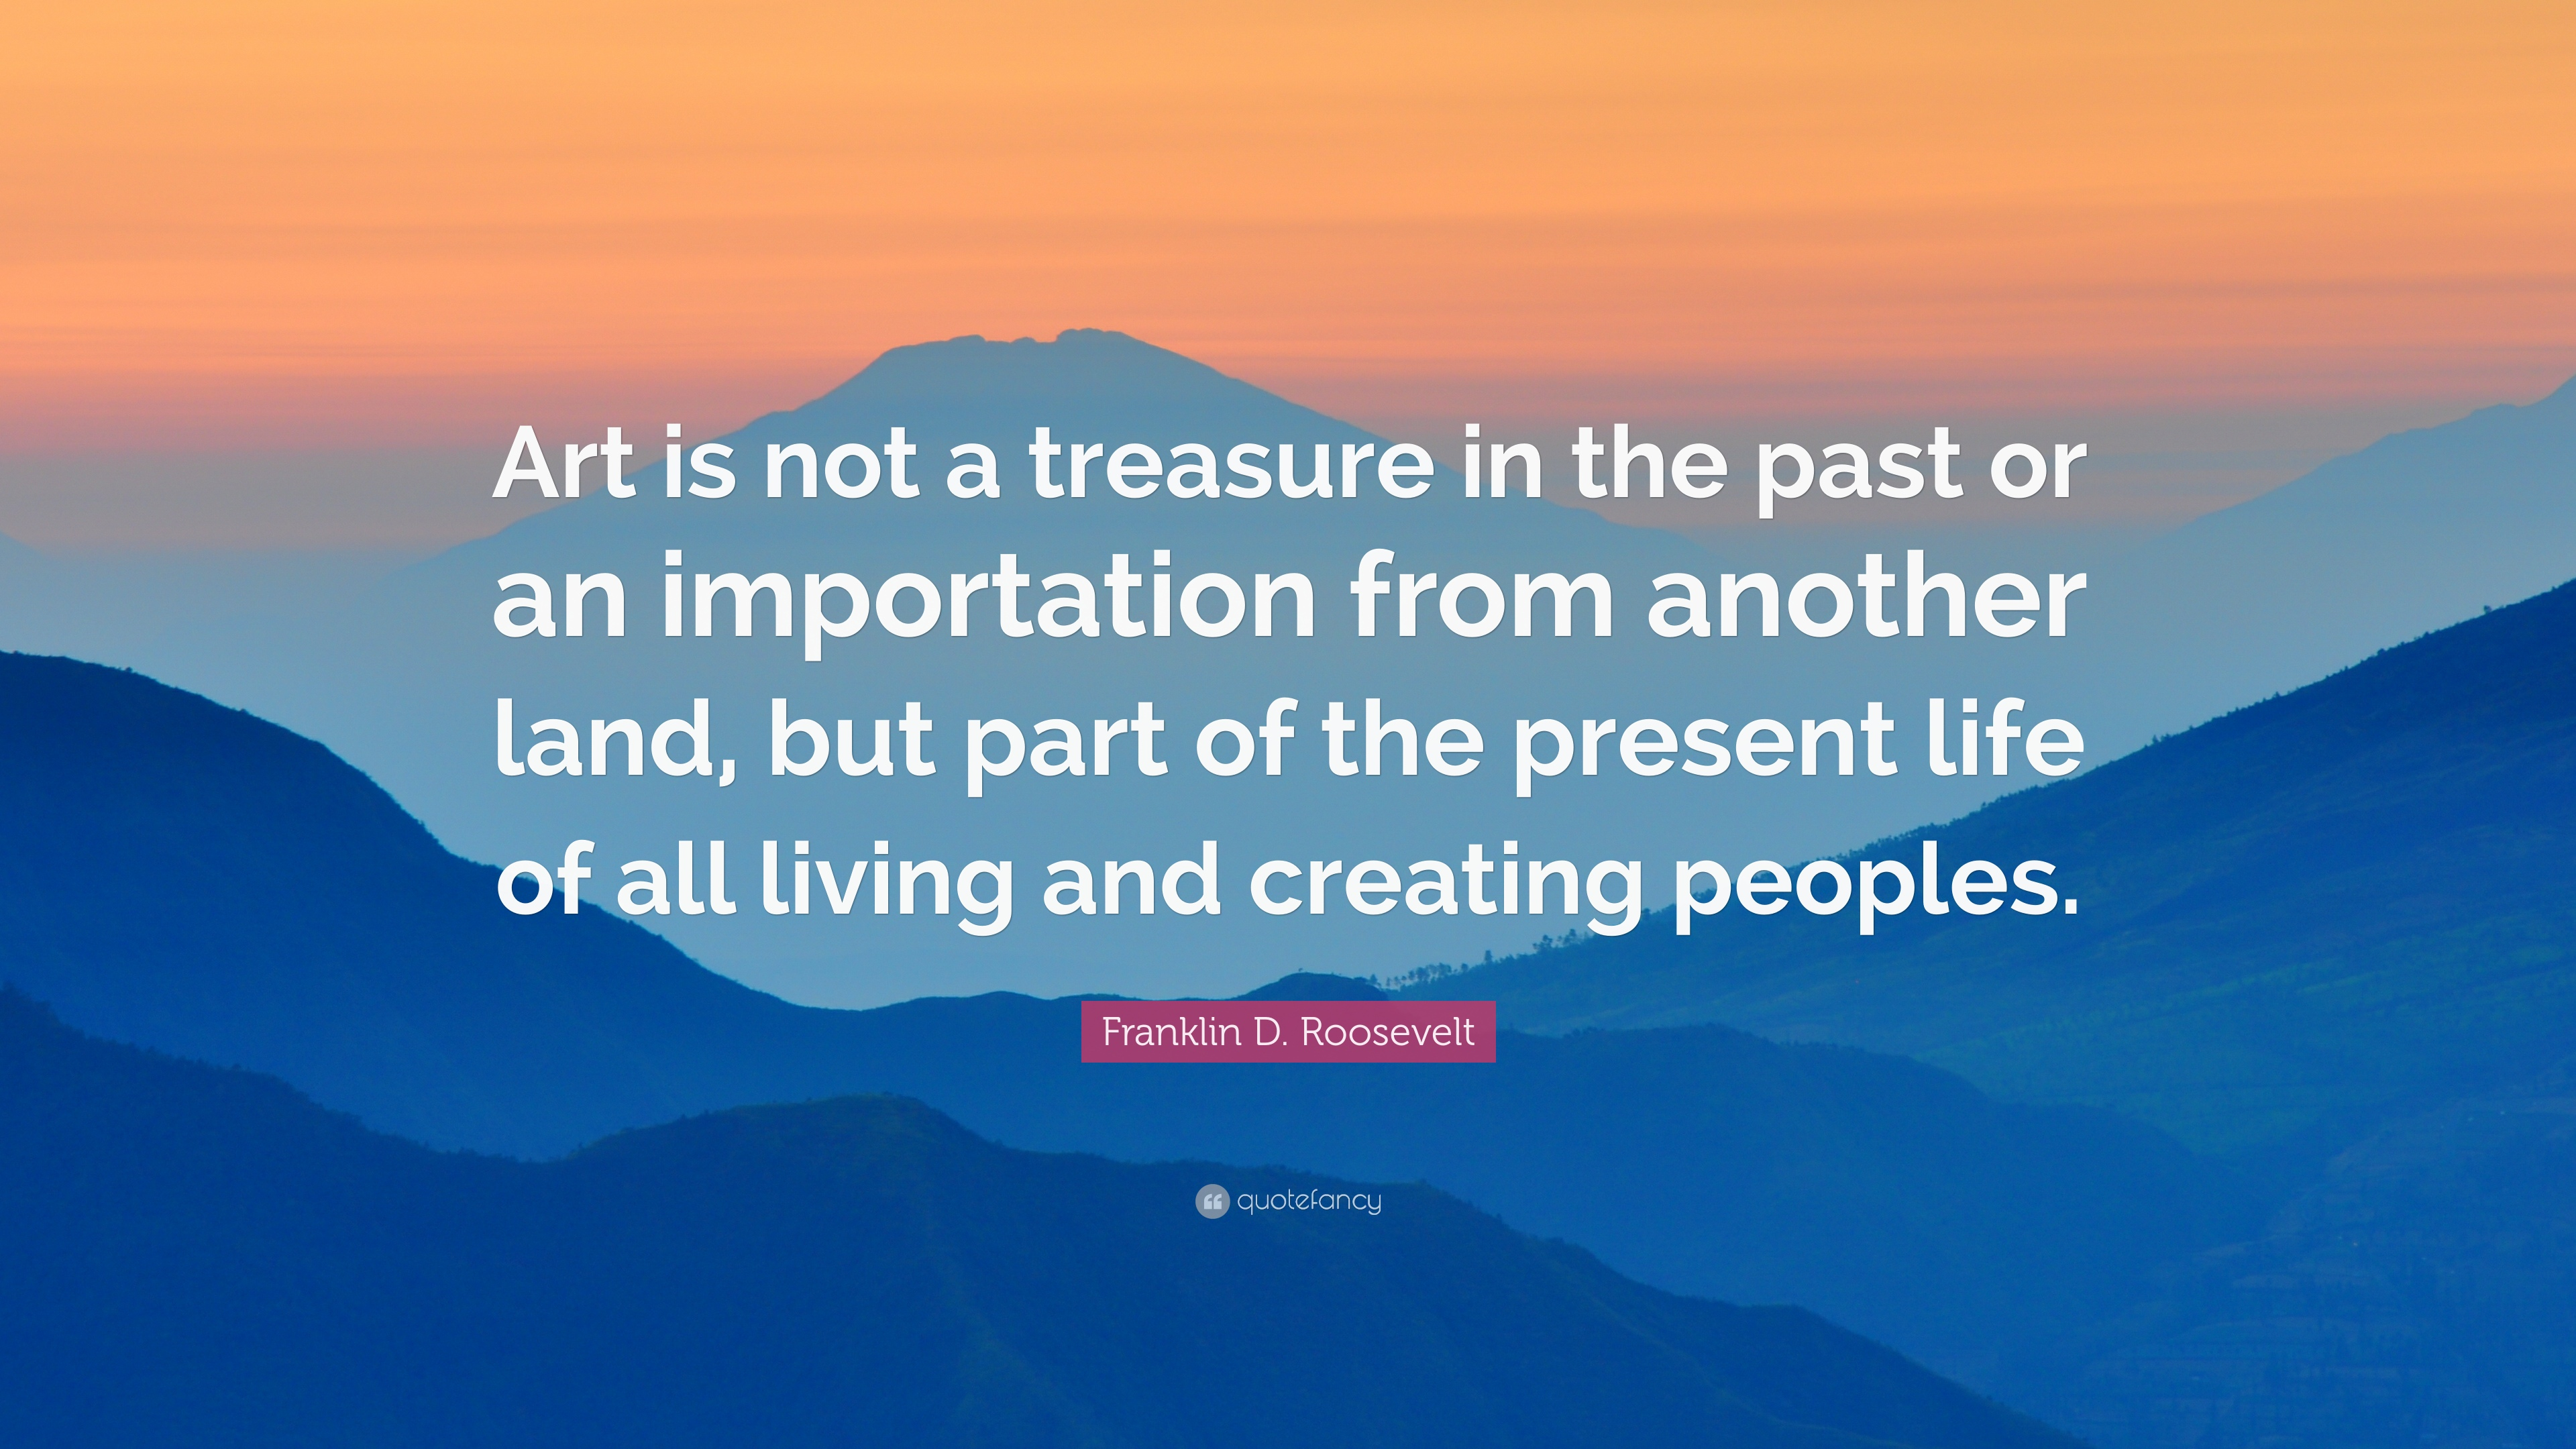 Franklin D Roosevelt Quote Art Is Not A Treasure In The Past Or